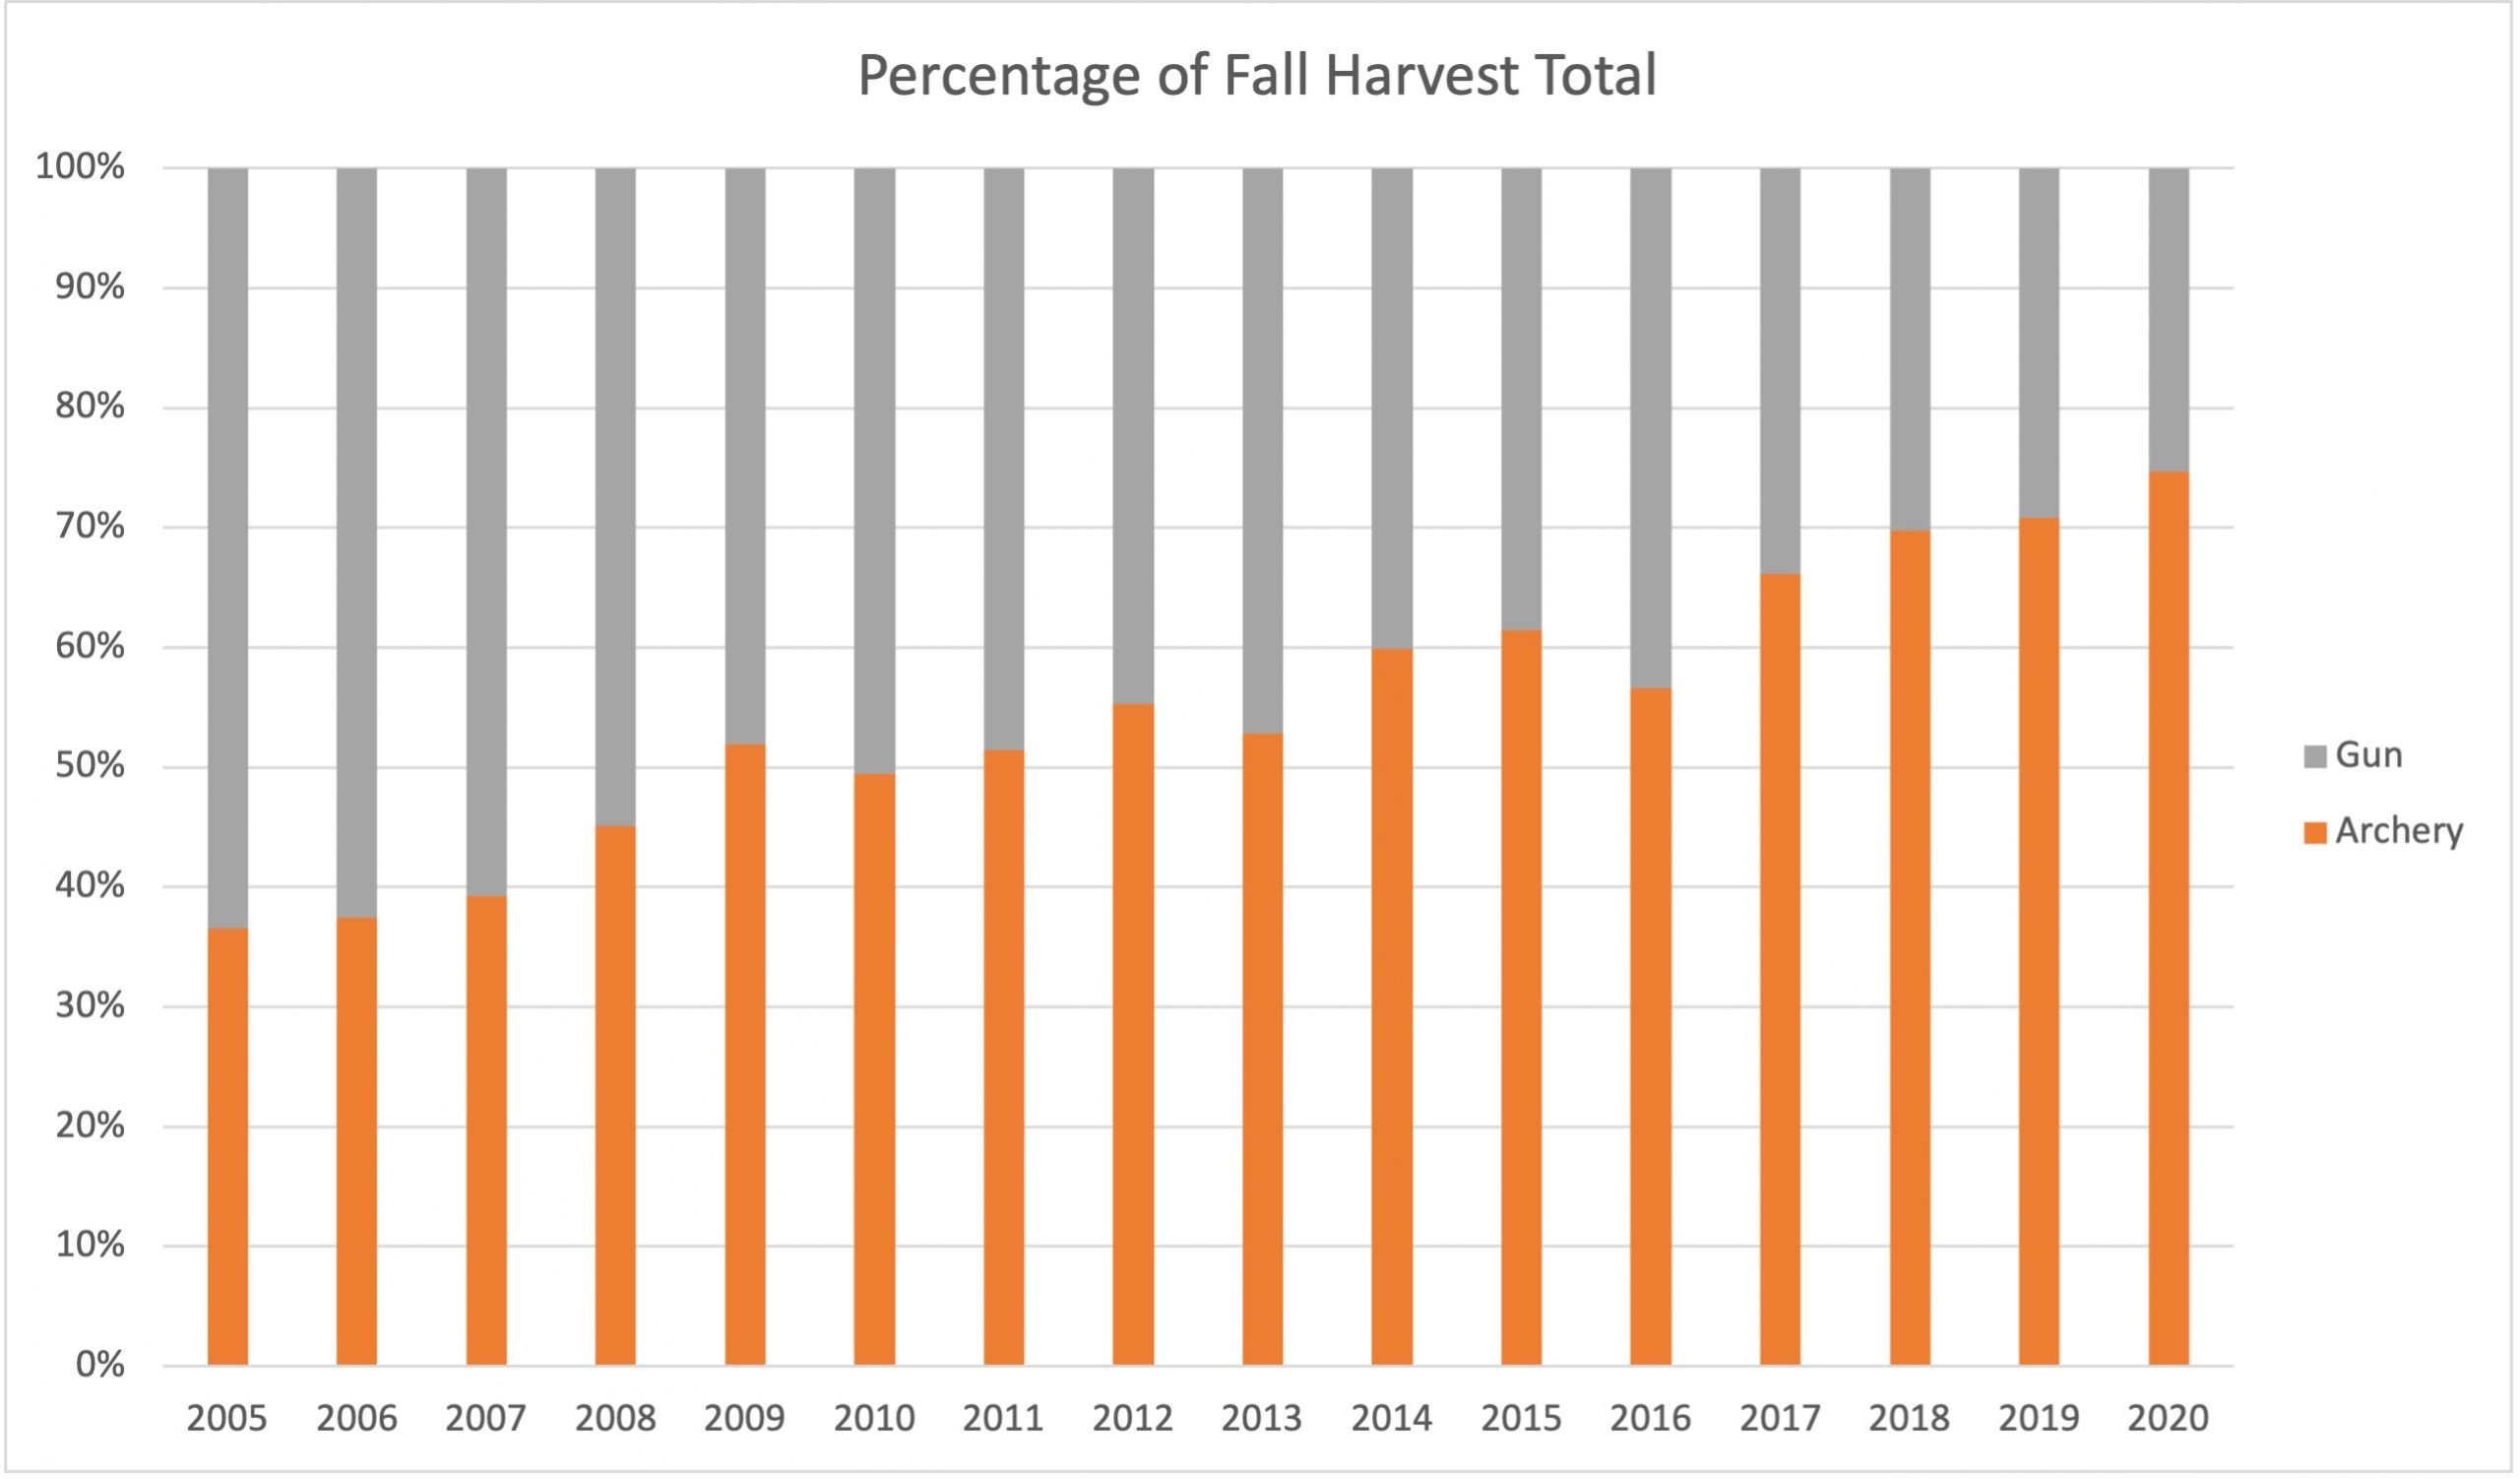 A chart indicating the percentage of fall harvest totals for fall gun and archery turkey seasons.